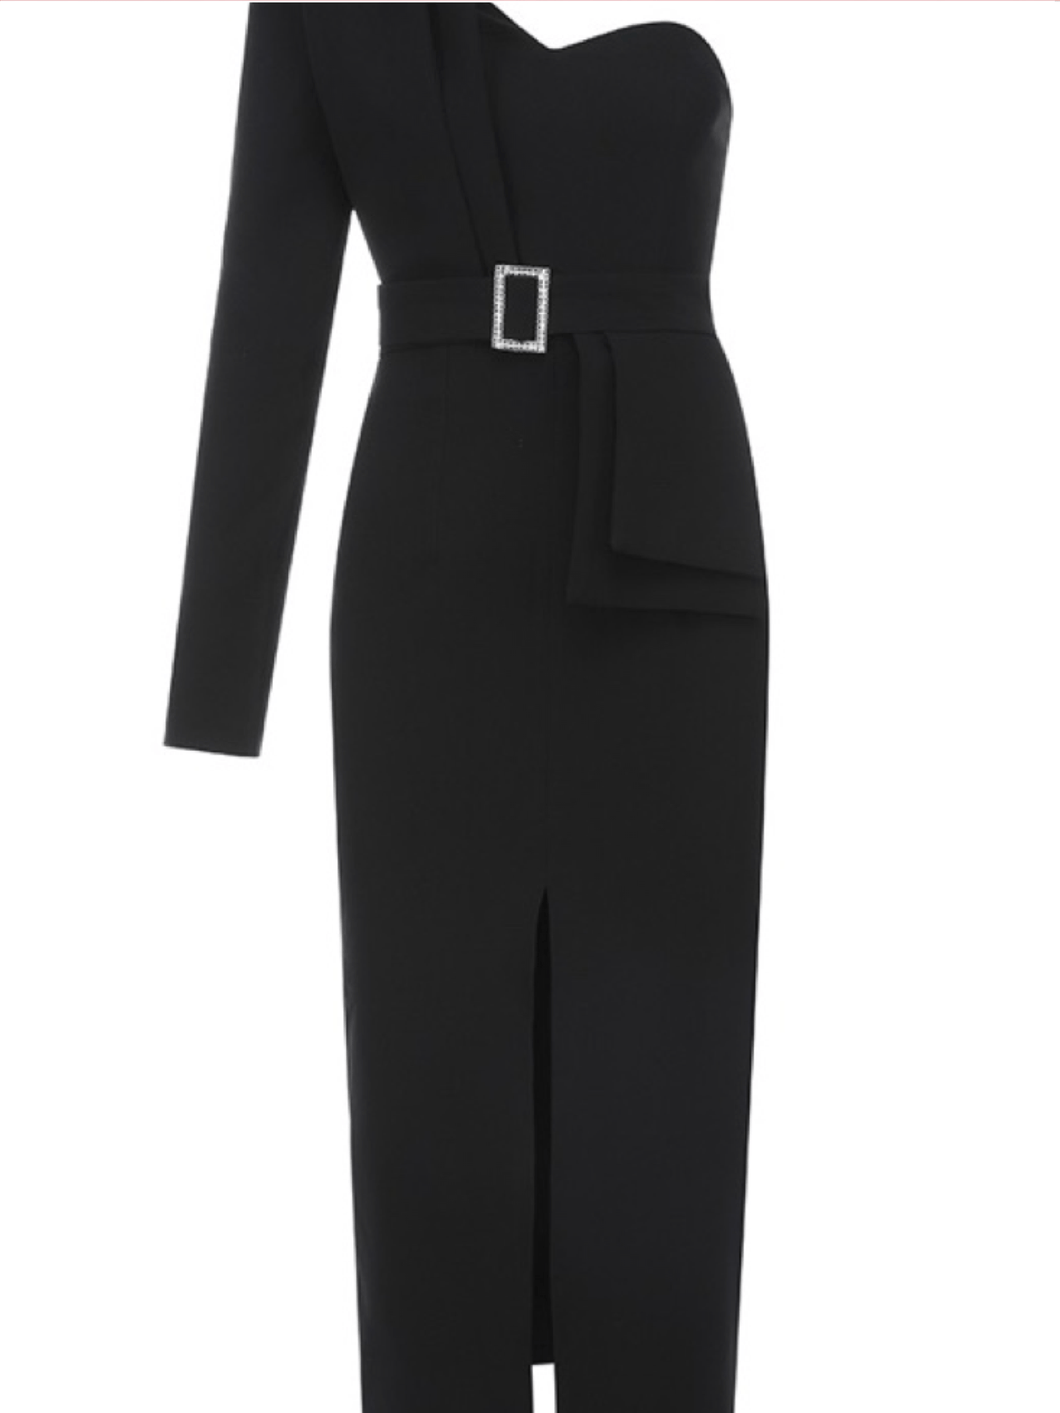 Celia Black Dress - Paola Collections